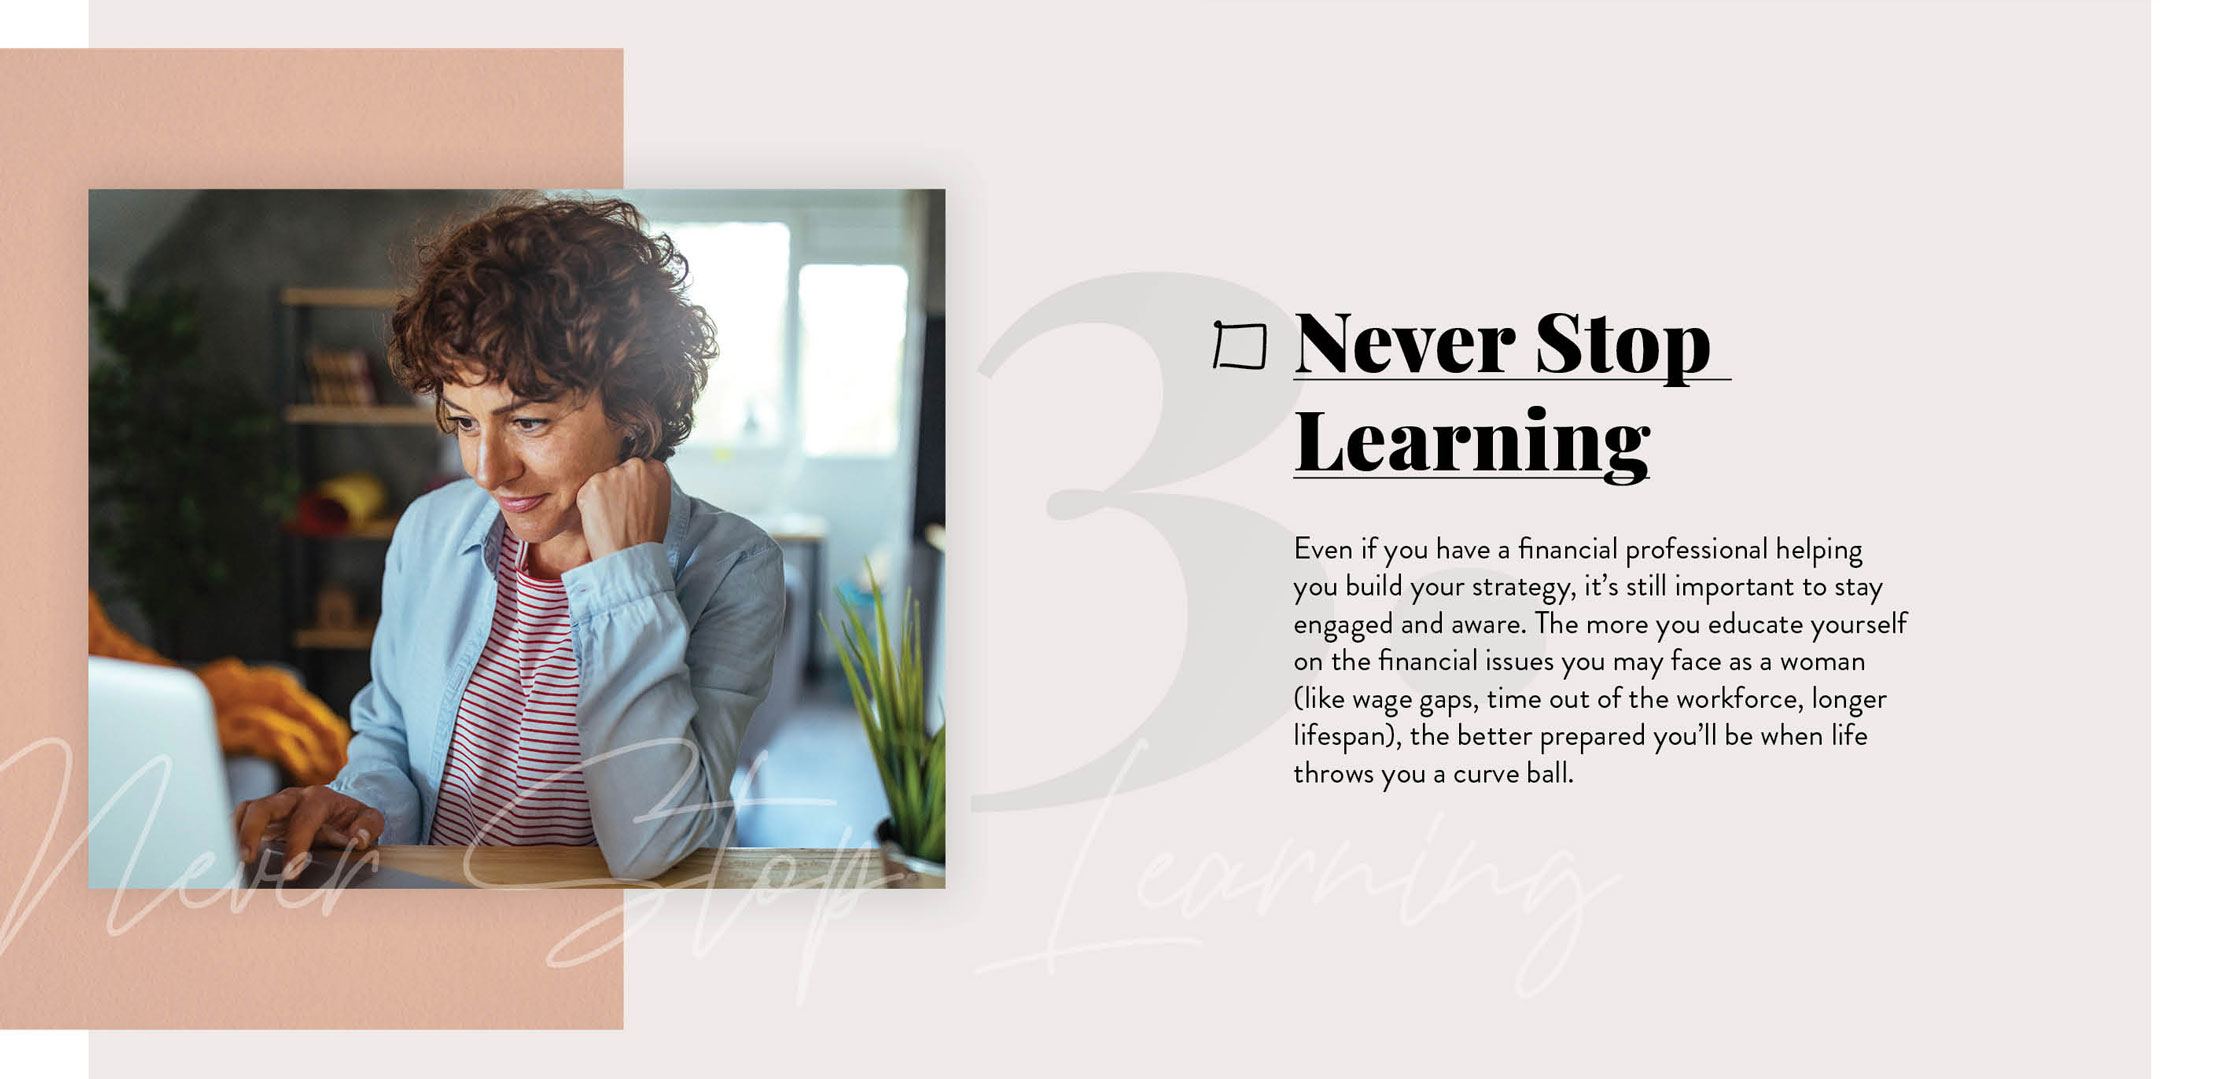 Never Stop Learning. Even if you have a financial professional helping you build your strategy, it's still important to stay engaged and aware. The more you continue to educate yourself on the financial issues you'll likely face as a woman, the better prepared you'll be when life throws you those inevitable curveballs.